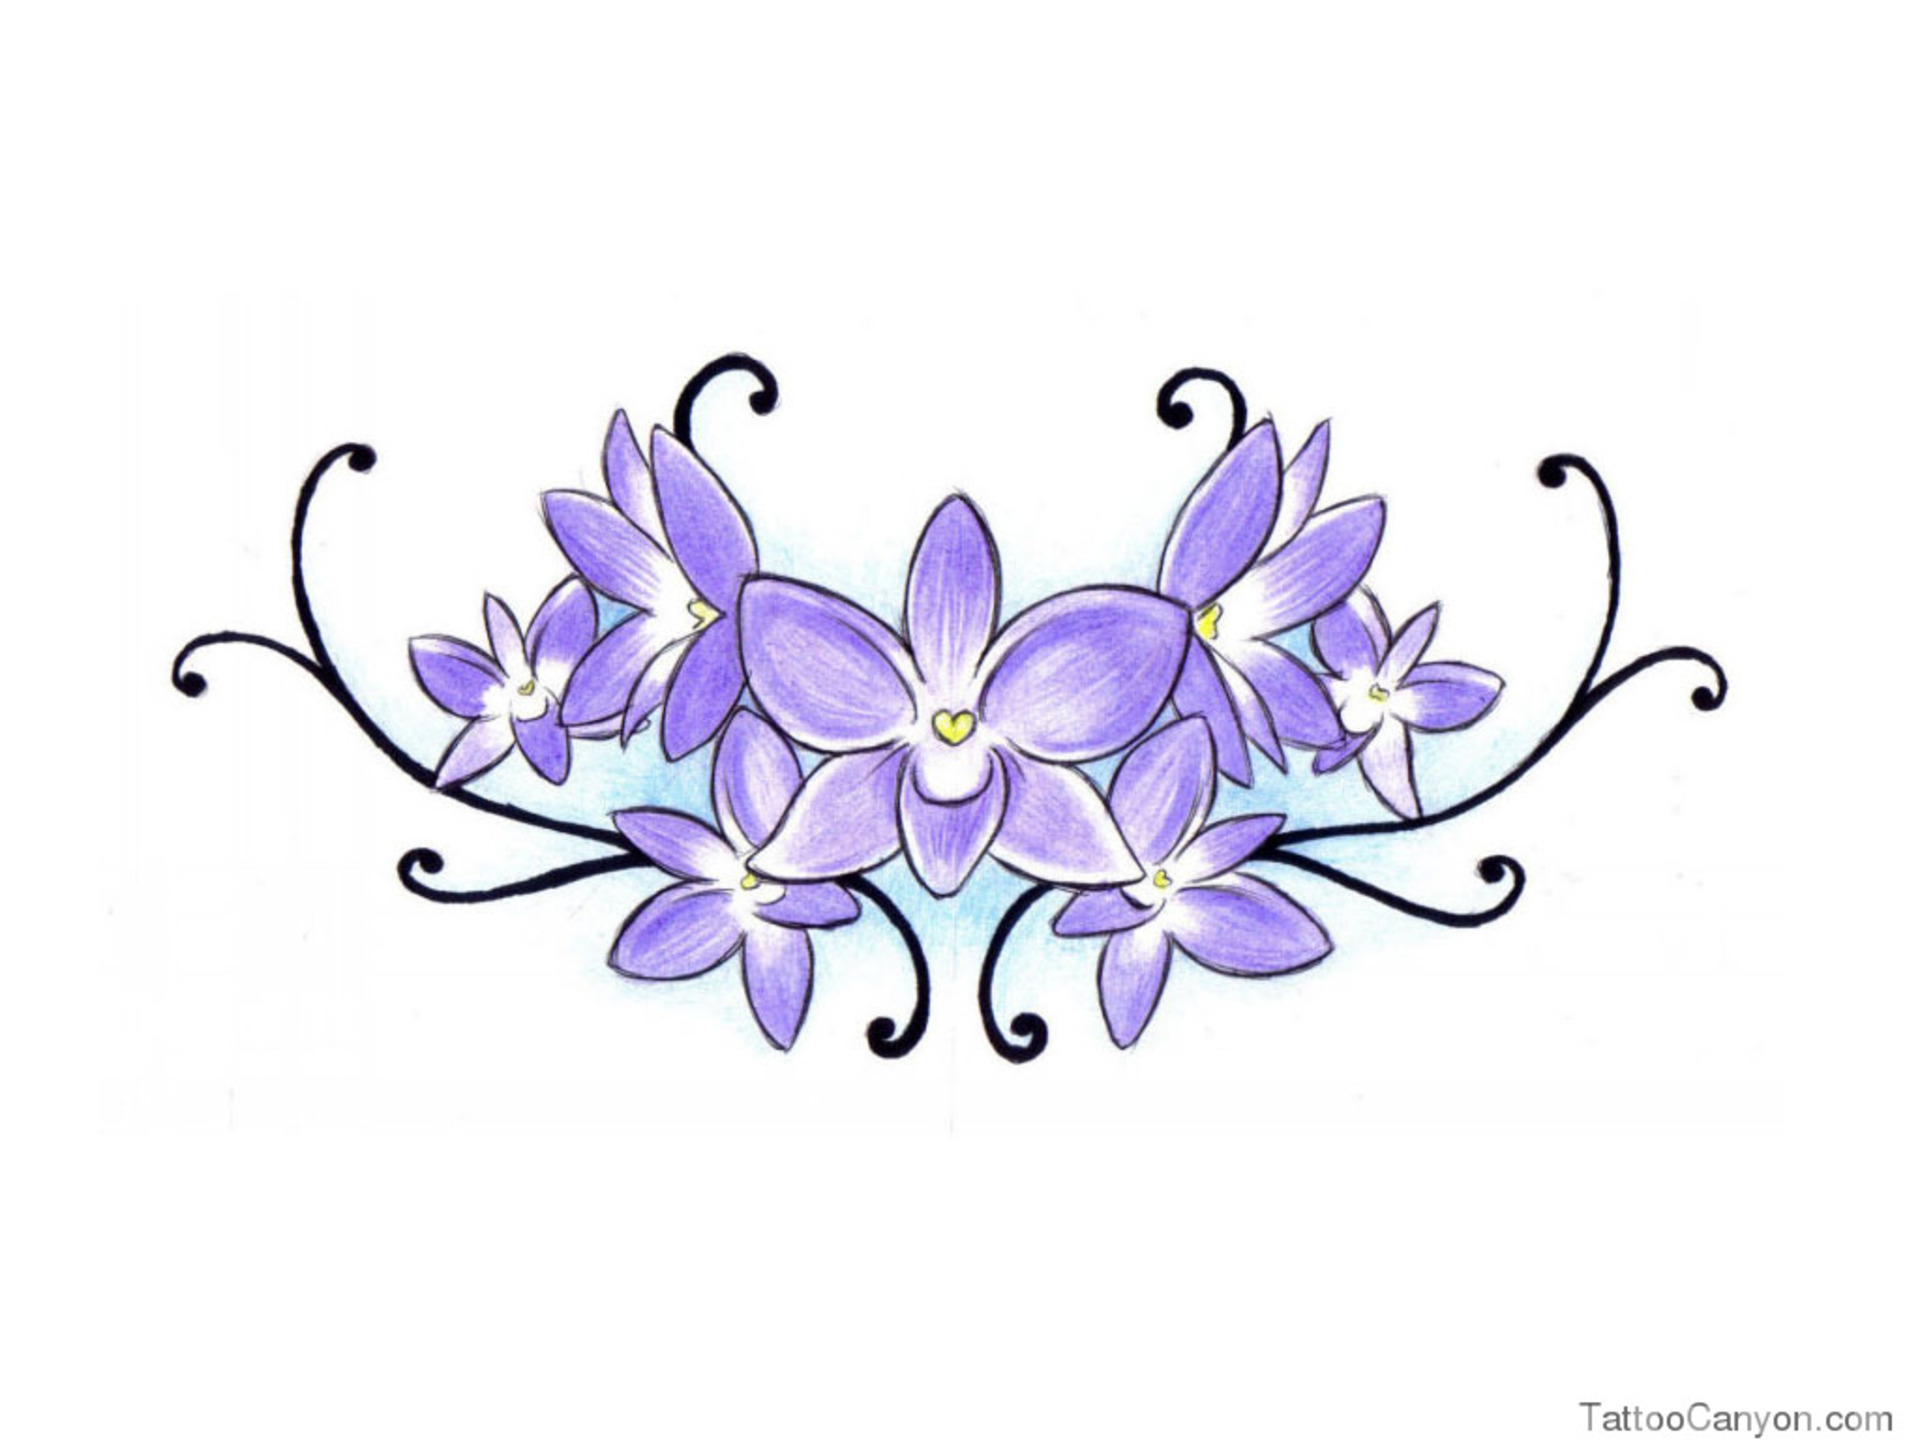 purple flowers drawing at getdrawings com free for butterfly outline clip art for cricut butterfly outline clip art for cricut